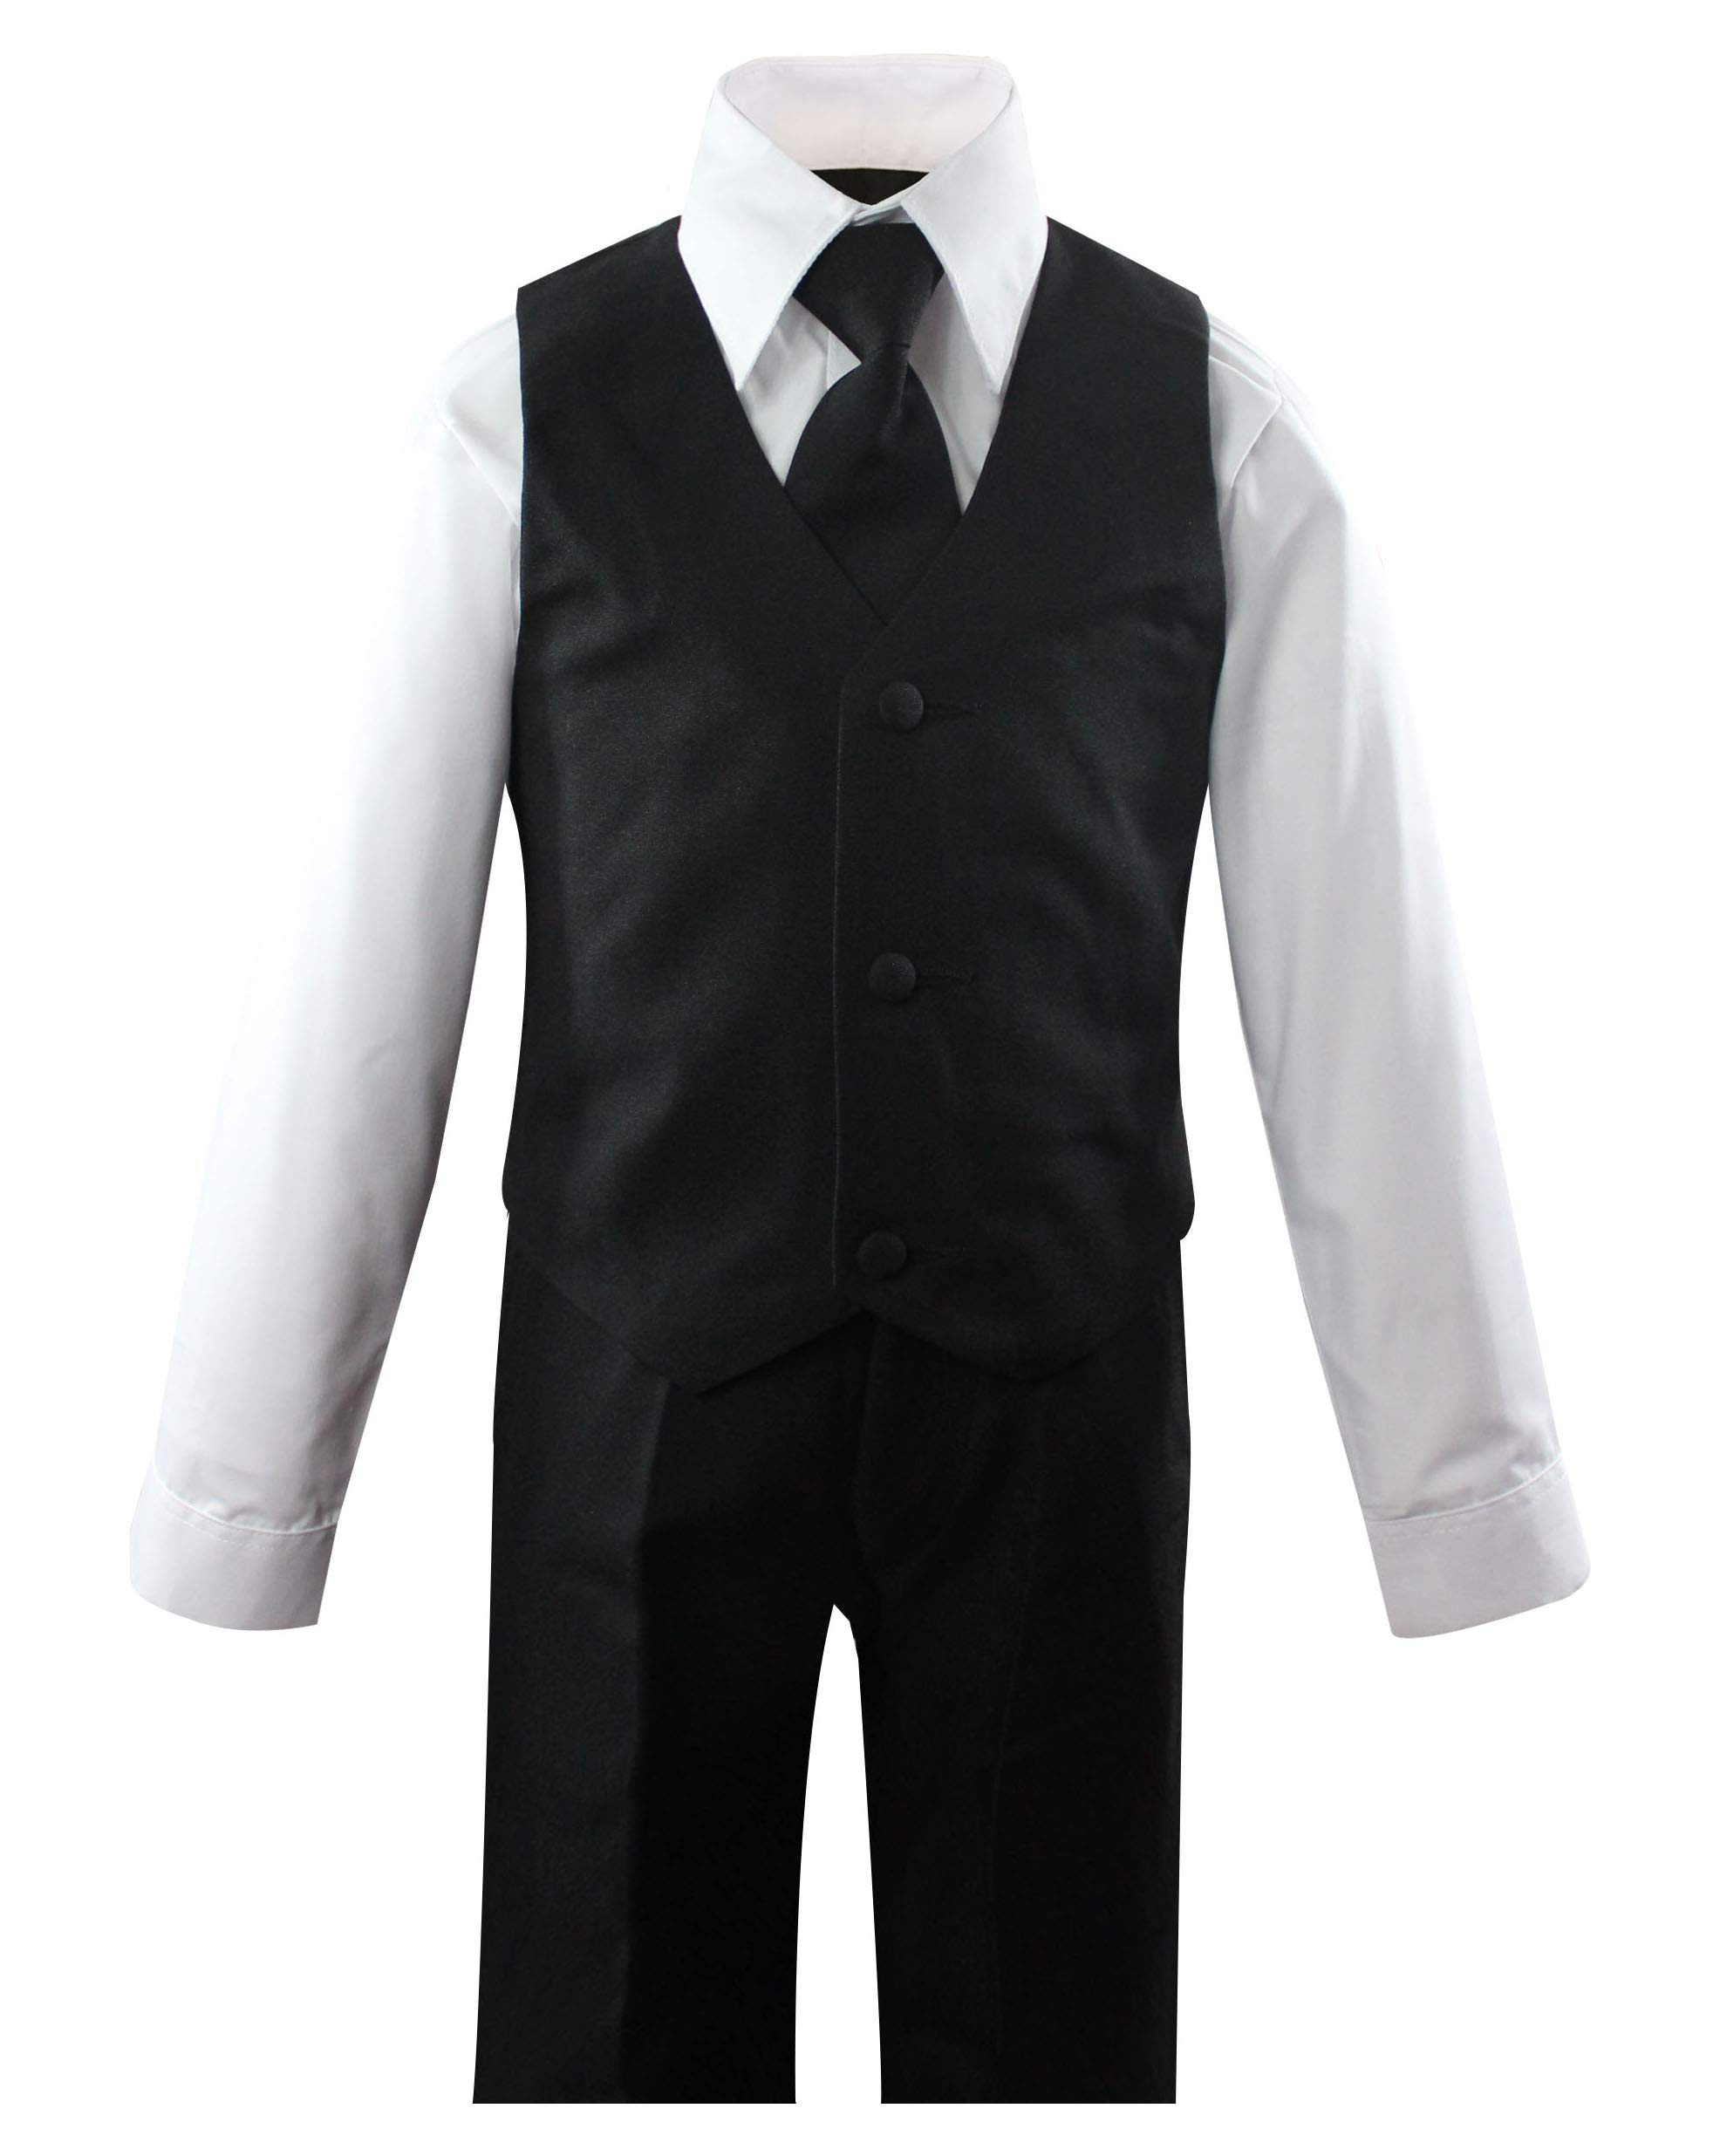 Luca Gabriel Toddler Boys' 5 Piece Classic Fit No Tail Formal Black Dress Suit Set with Tie and Vest - Size 4T by Luca Gabriel (Image #2)